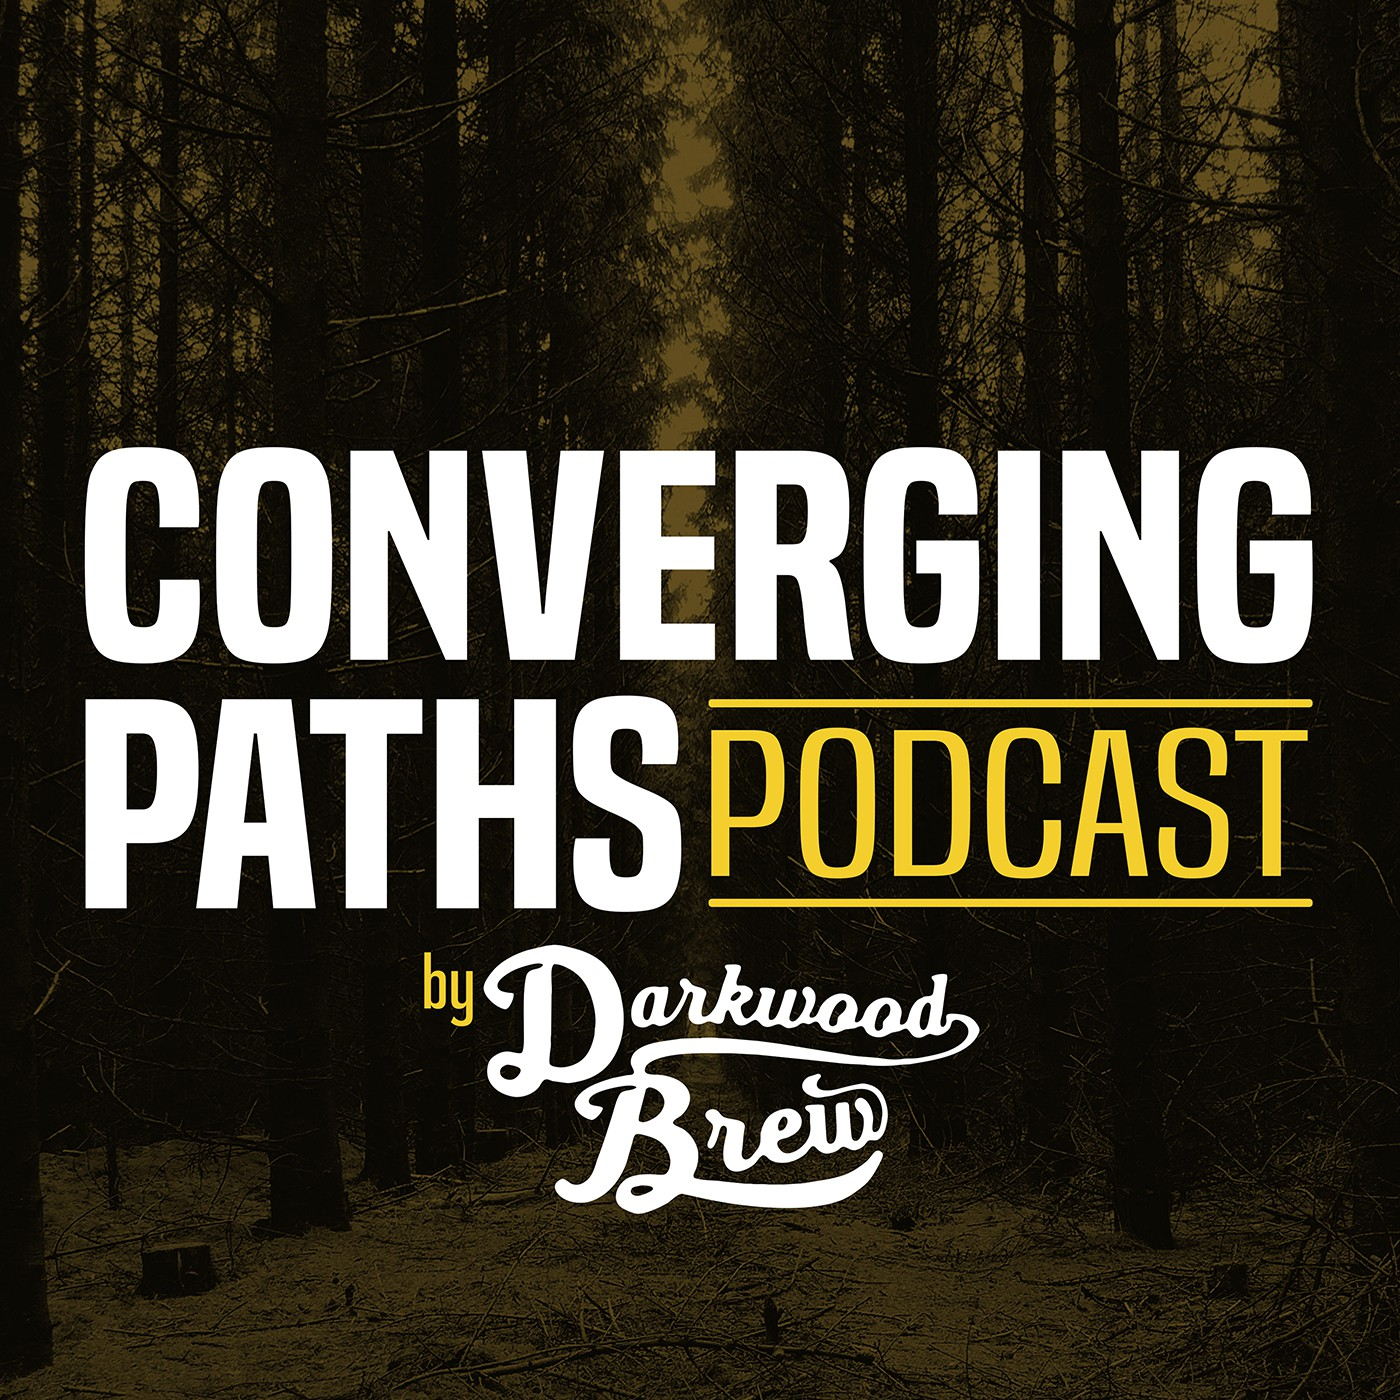 The Converging Paths Podcast